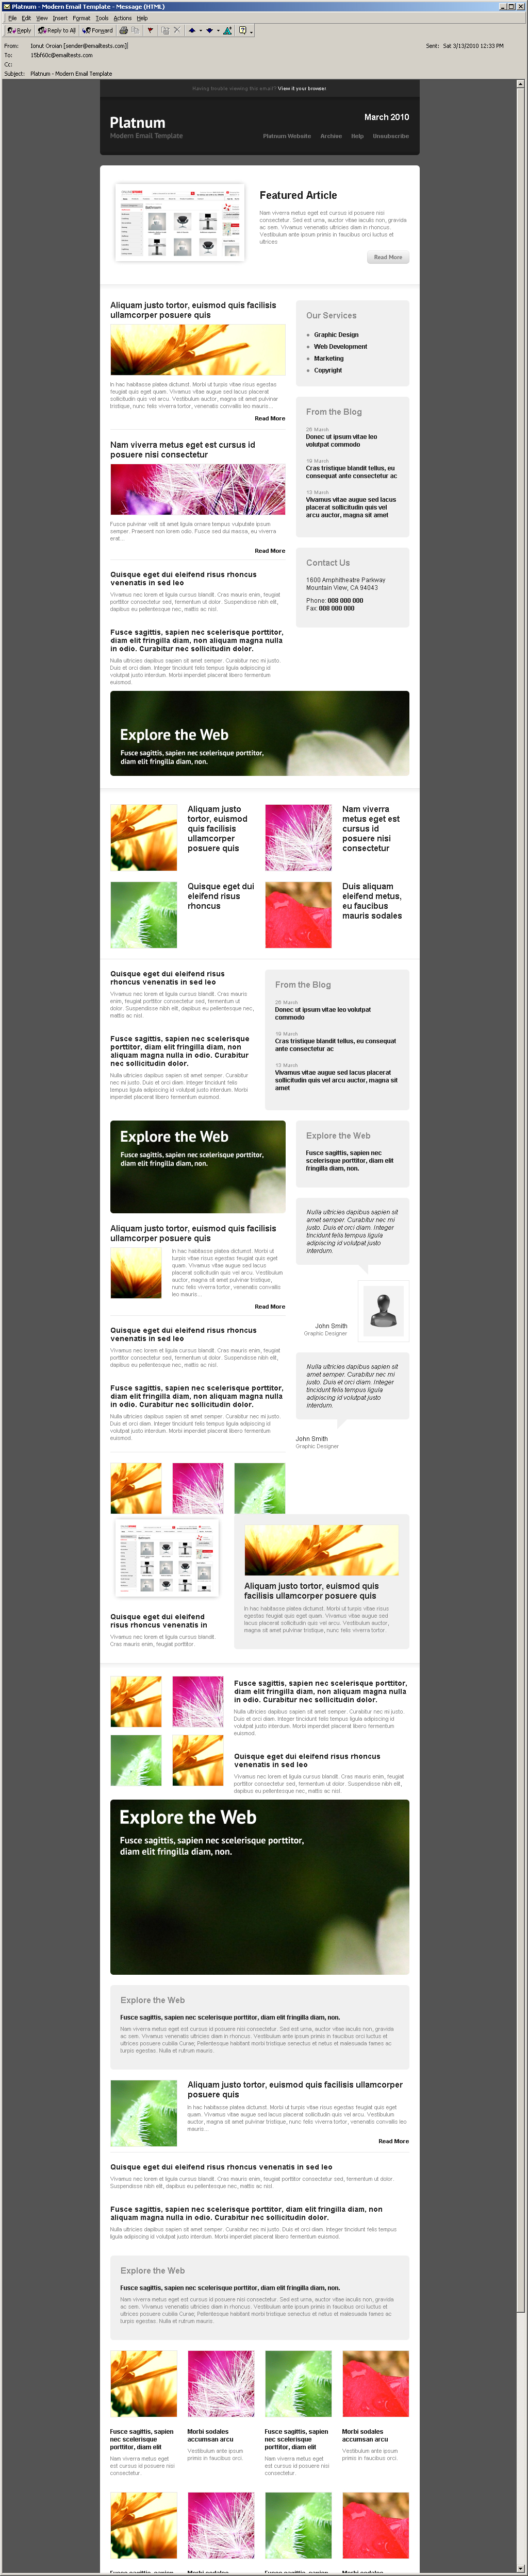 Platnum Email Template, 6 Layouts, 8 Colors - Outlook 2000 view - All elements listed.